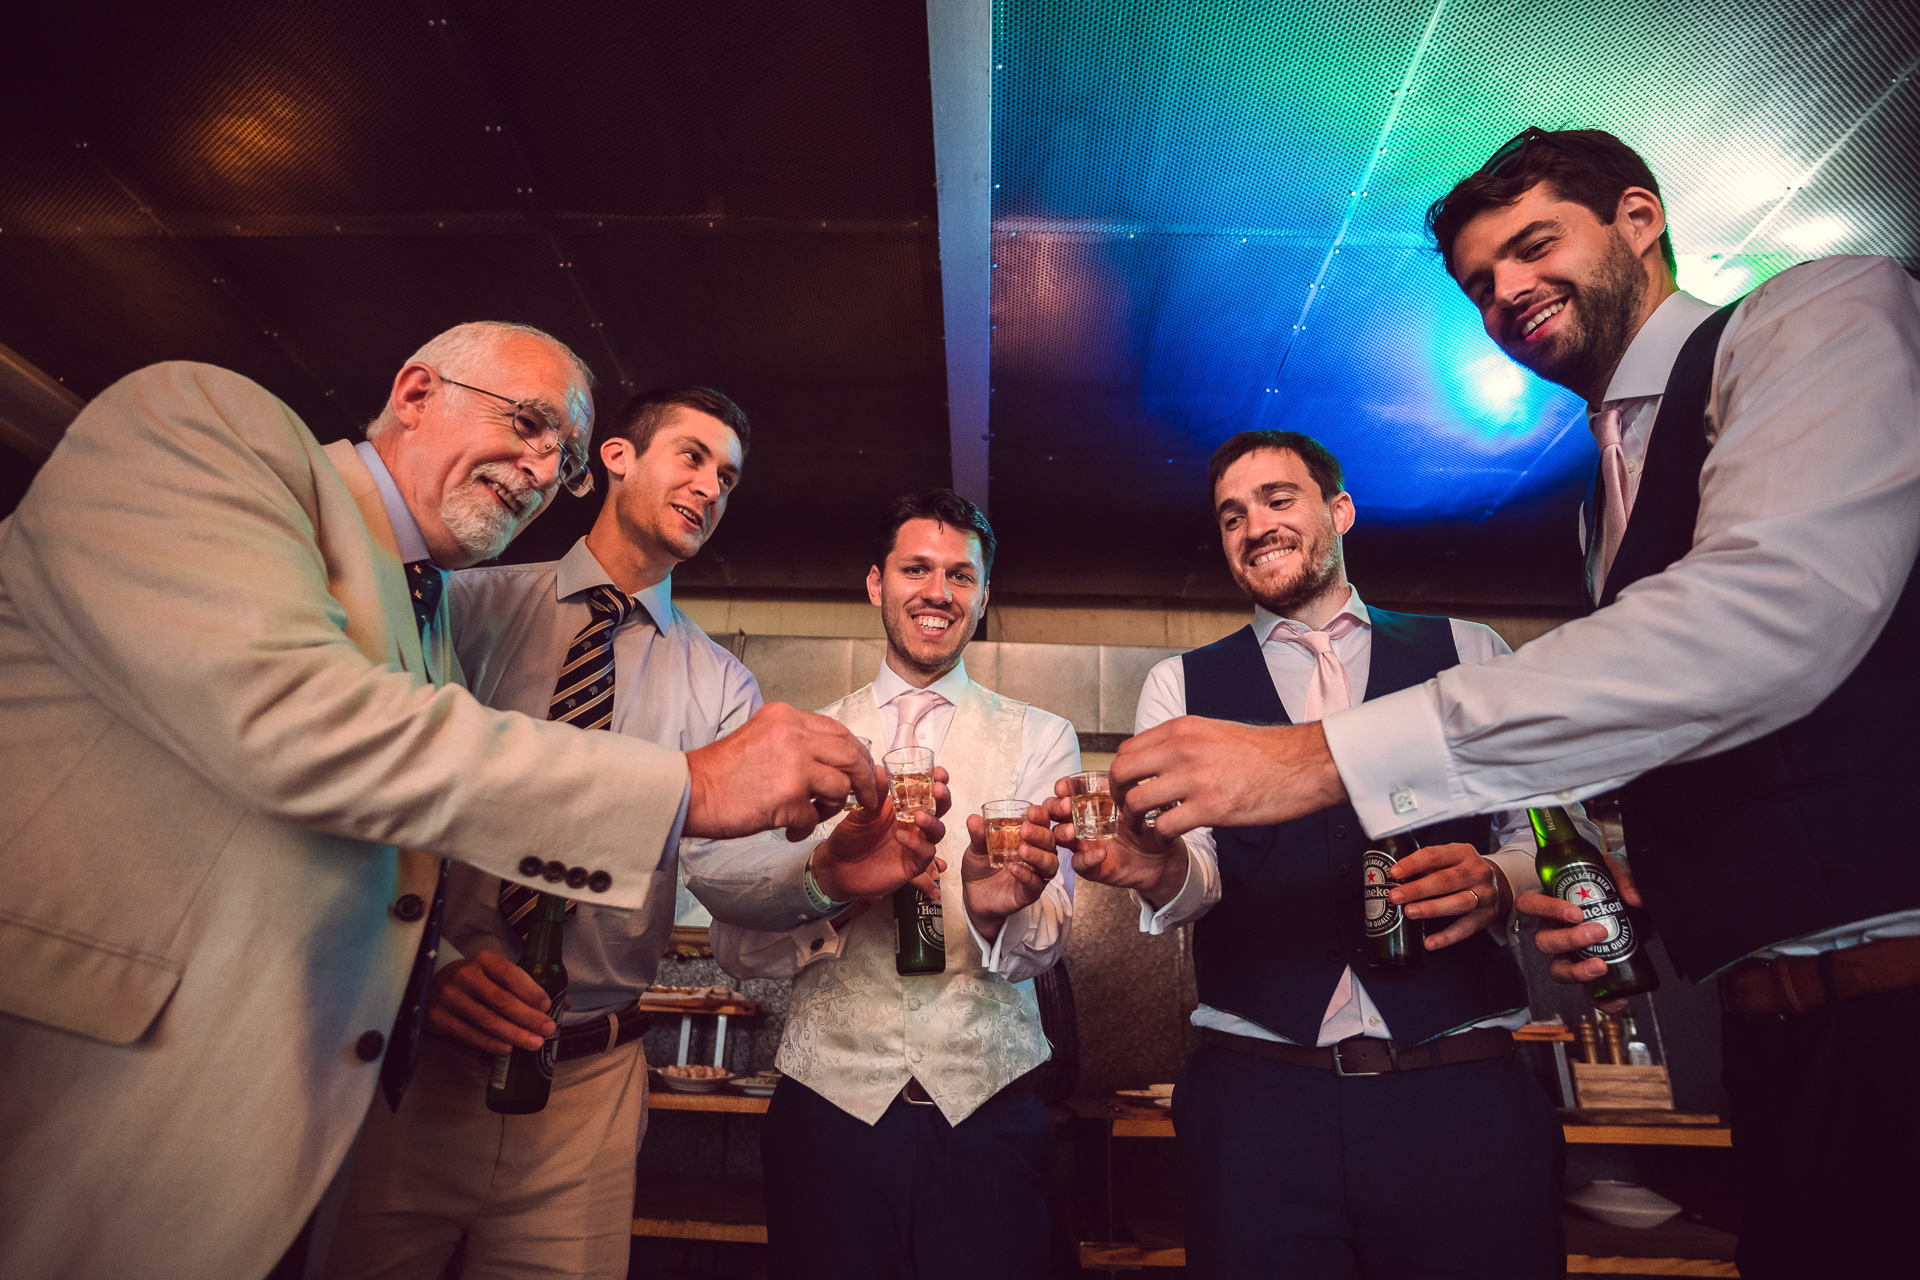 Wedding Photographers for Sofia Bulgaria | The men in attendance make a toast